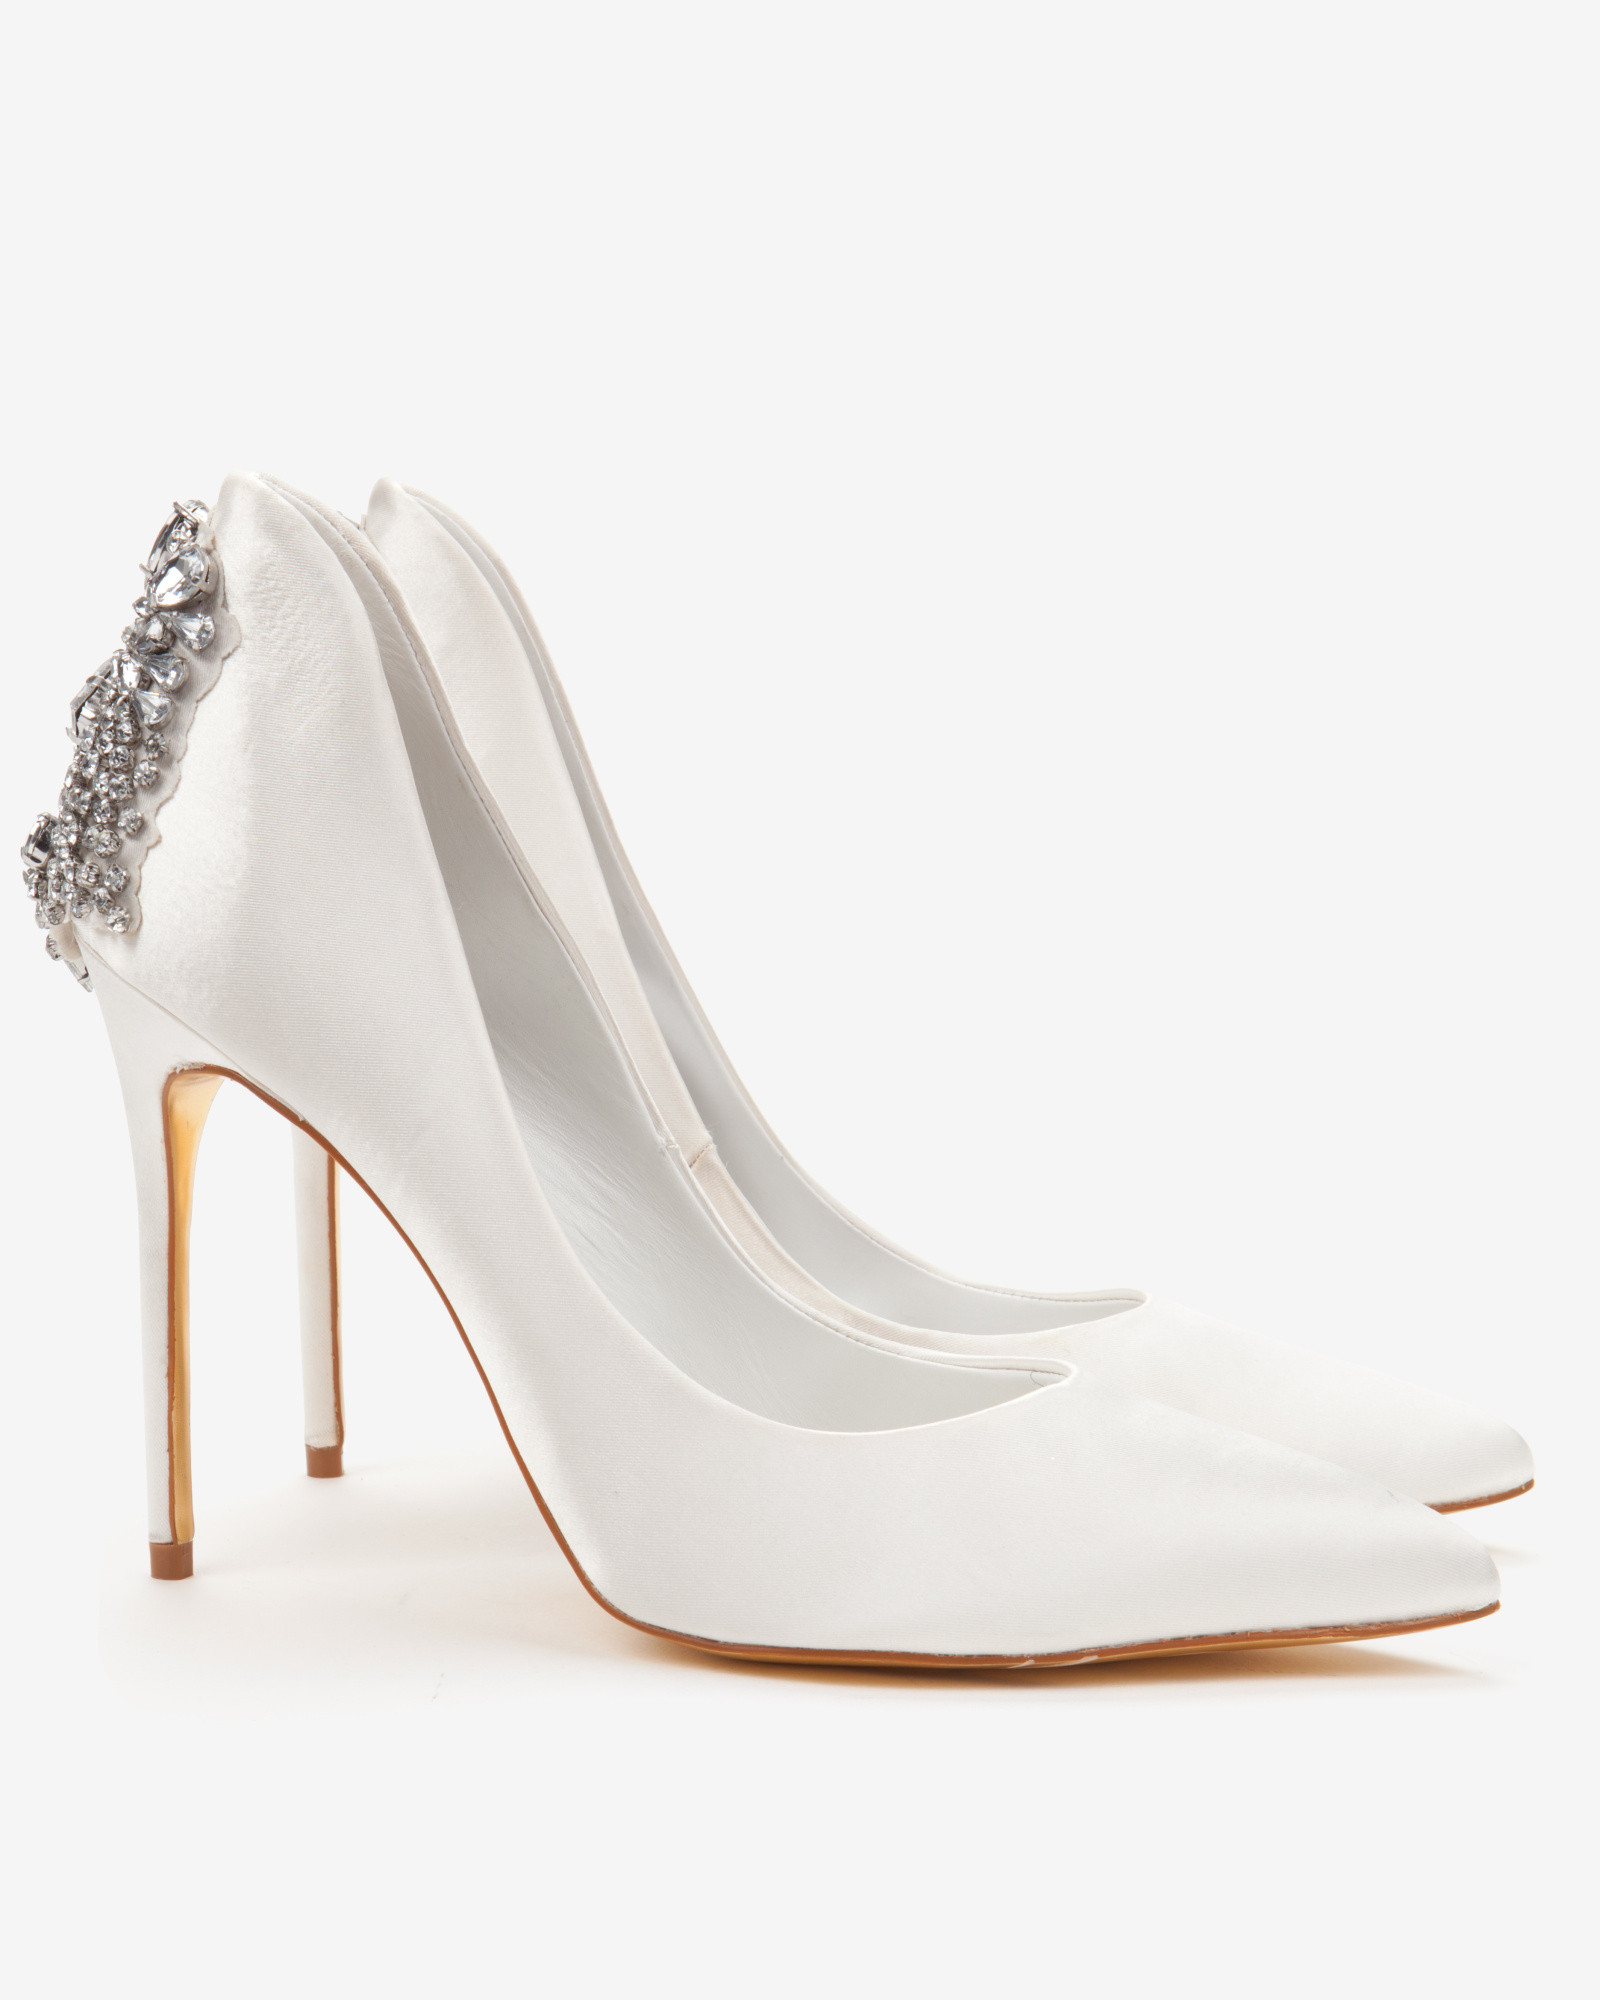 648cb4c3b Ted Baker Embellished Court Shoes in White - Lyst